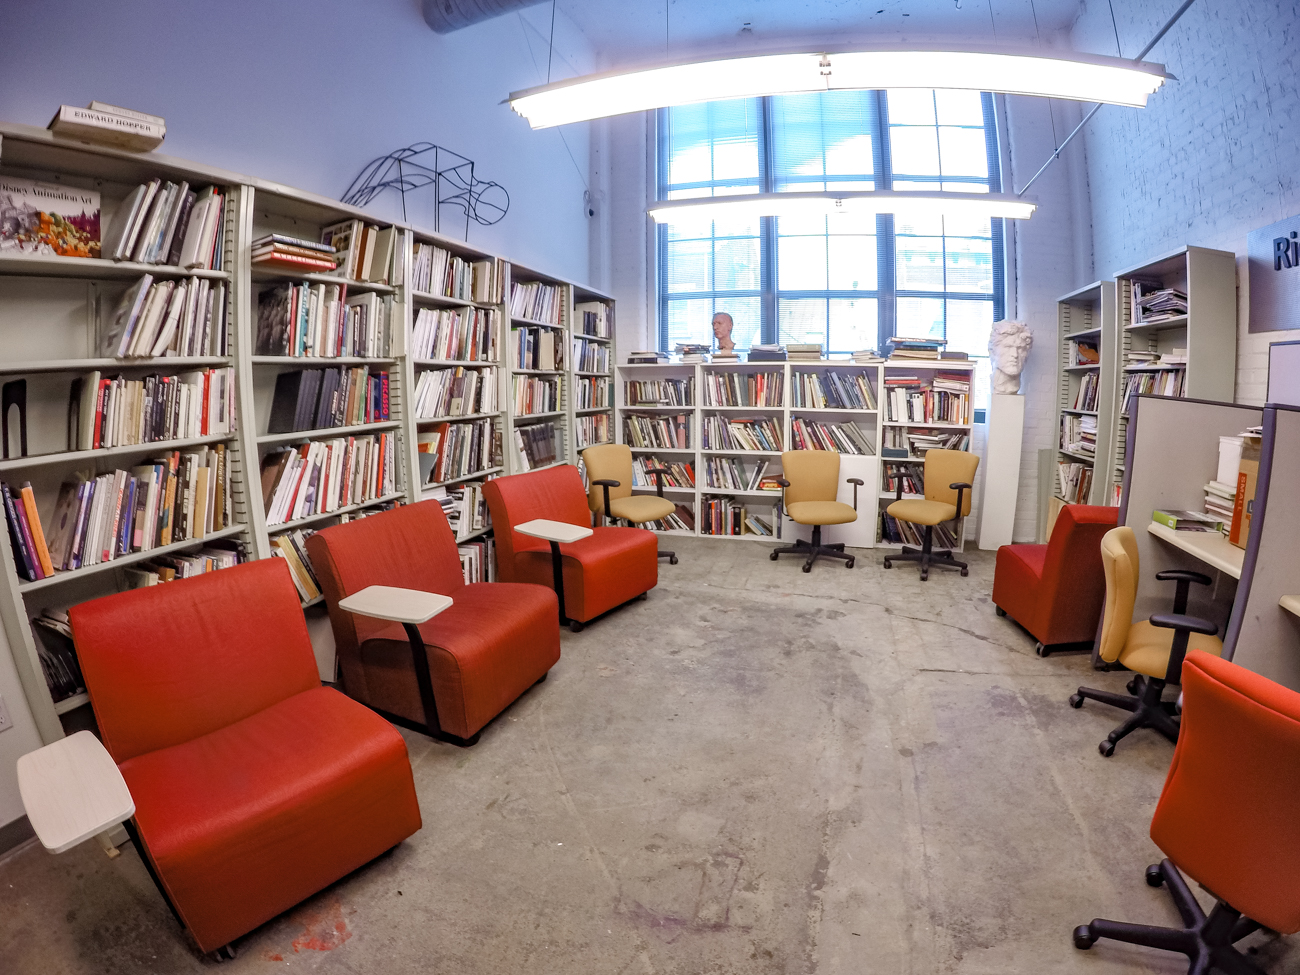 Art students need a place to congregate and a place of solitude. This quiet study space is cozy yet well lit. The official library of the Art Academy is the main Hamilton County library on Vine Street. / Image: Phil Armstrong, Cincinnati Refined // Published: 2.16.17